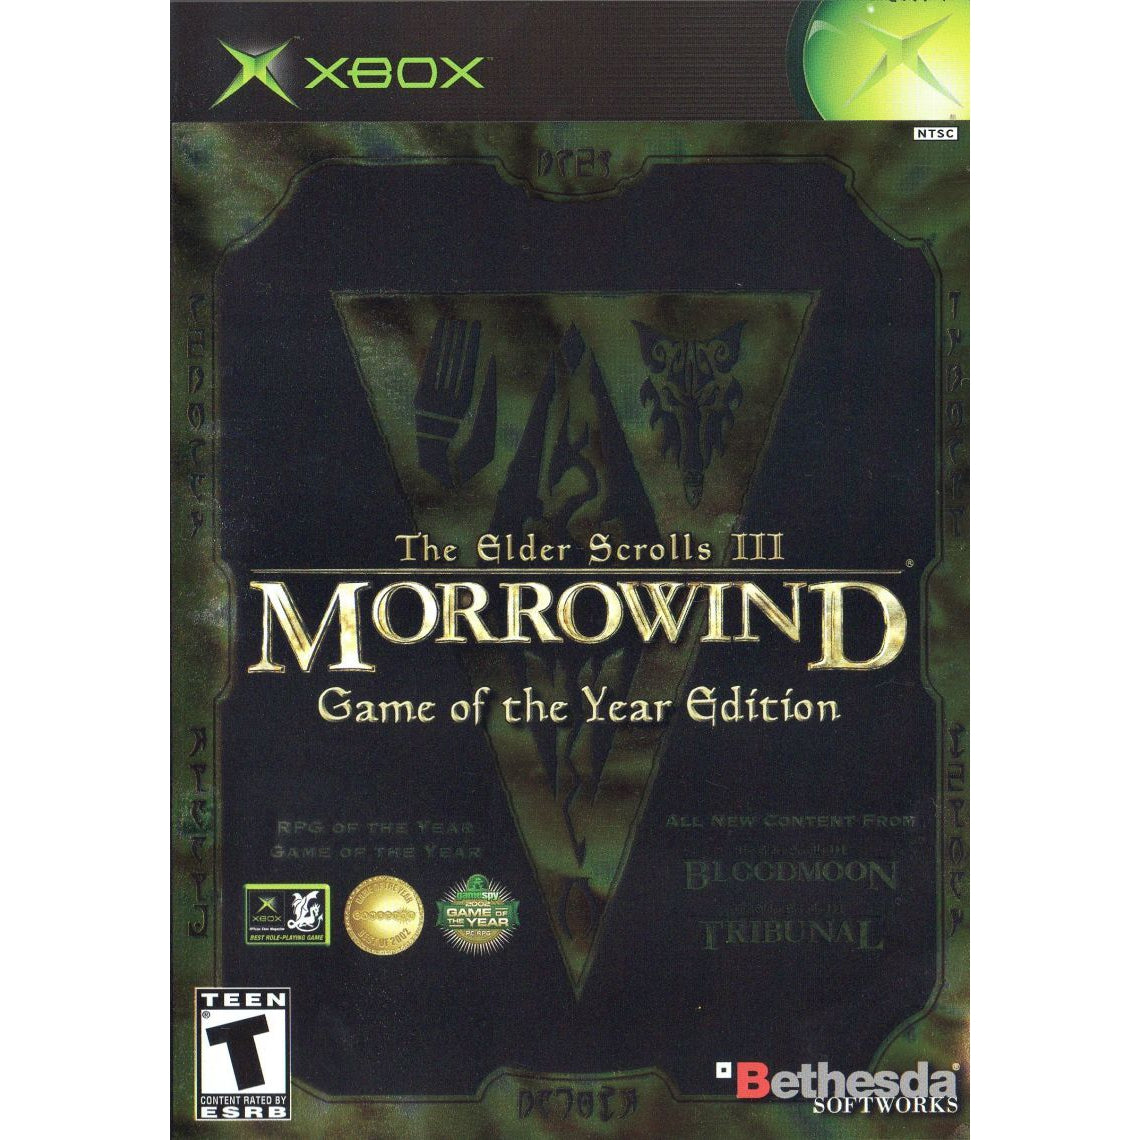 The Elder Scrolls III: Morrowind (Game of the Year Edition) - Microsoft Xbox Game Complete - YourGamingShop.com - Buy, Sell, Trade Video Games Online. 120 Day Warranty. Satisfaction Guaranteed.